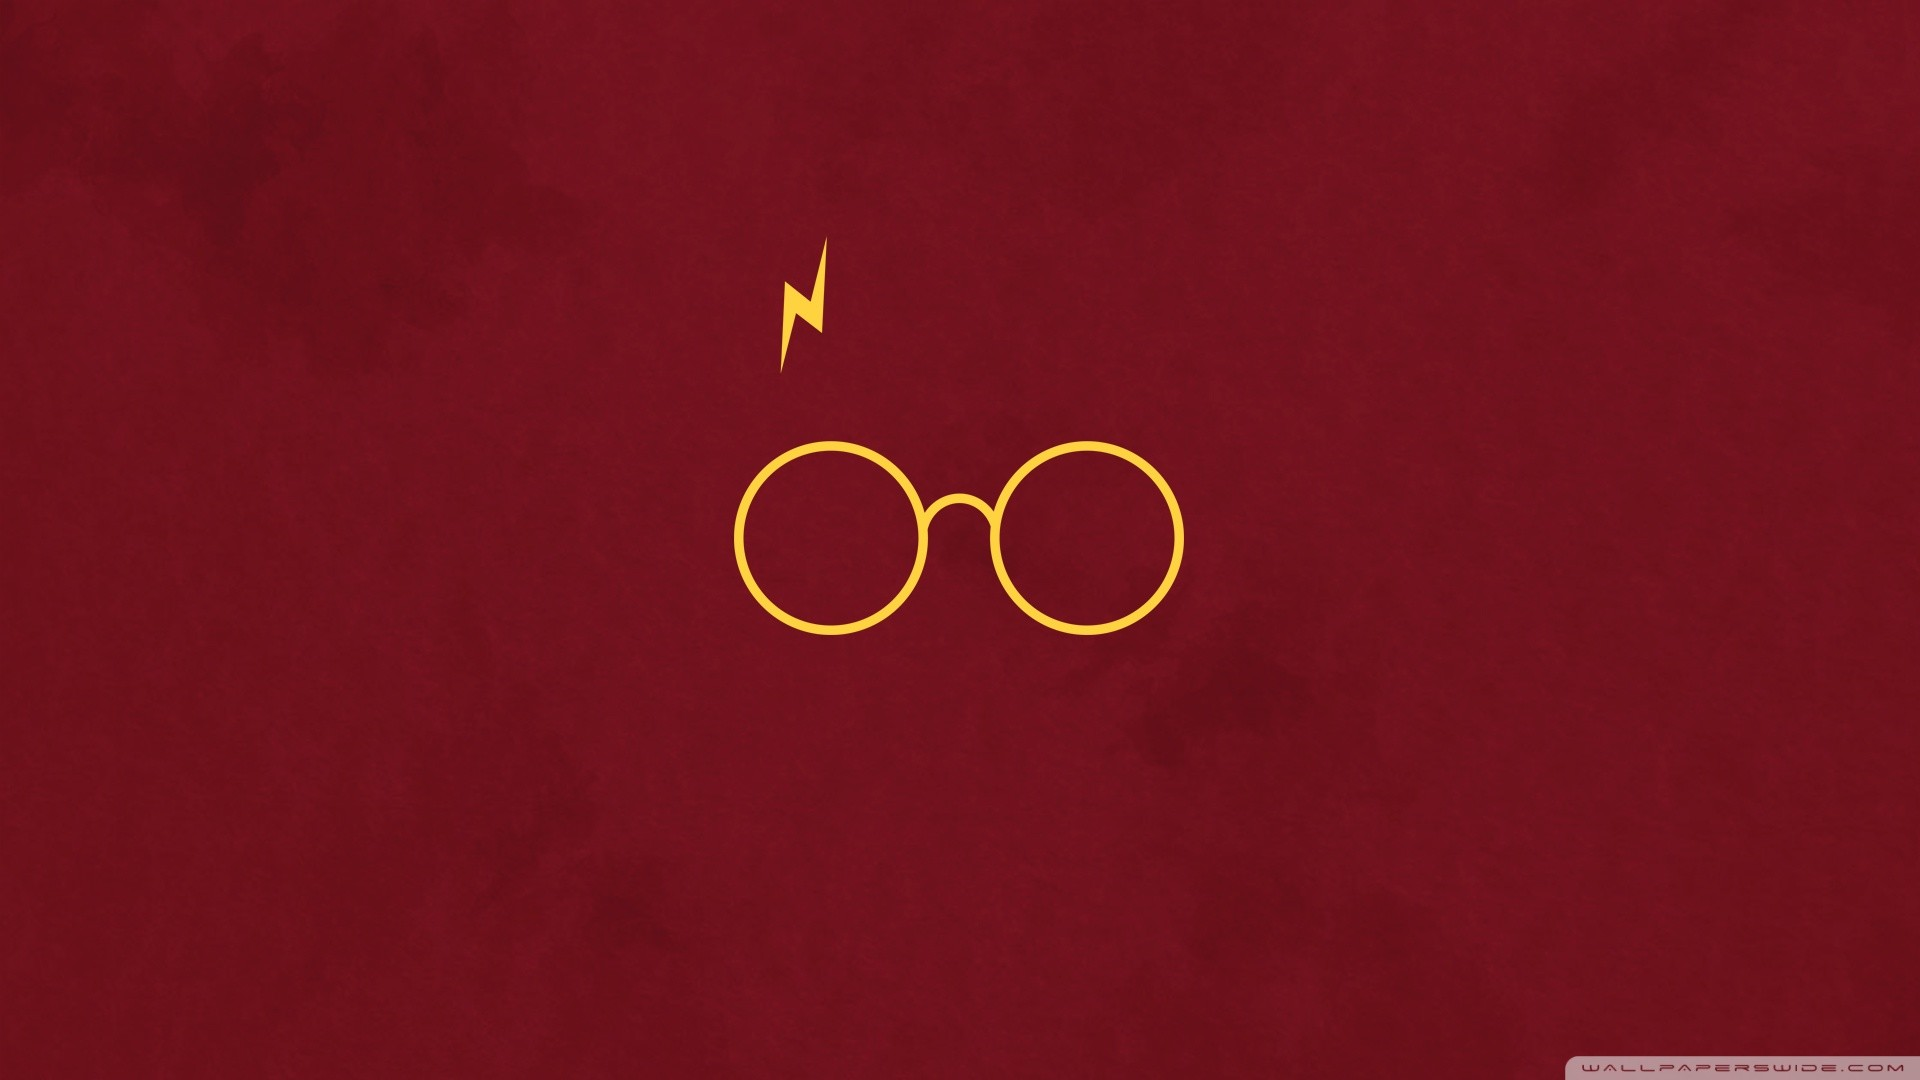 Harry Potter Quotes Desktop Wallpaper Harry Potter Screensavers And Wallpapers 81 Images